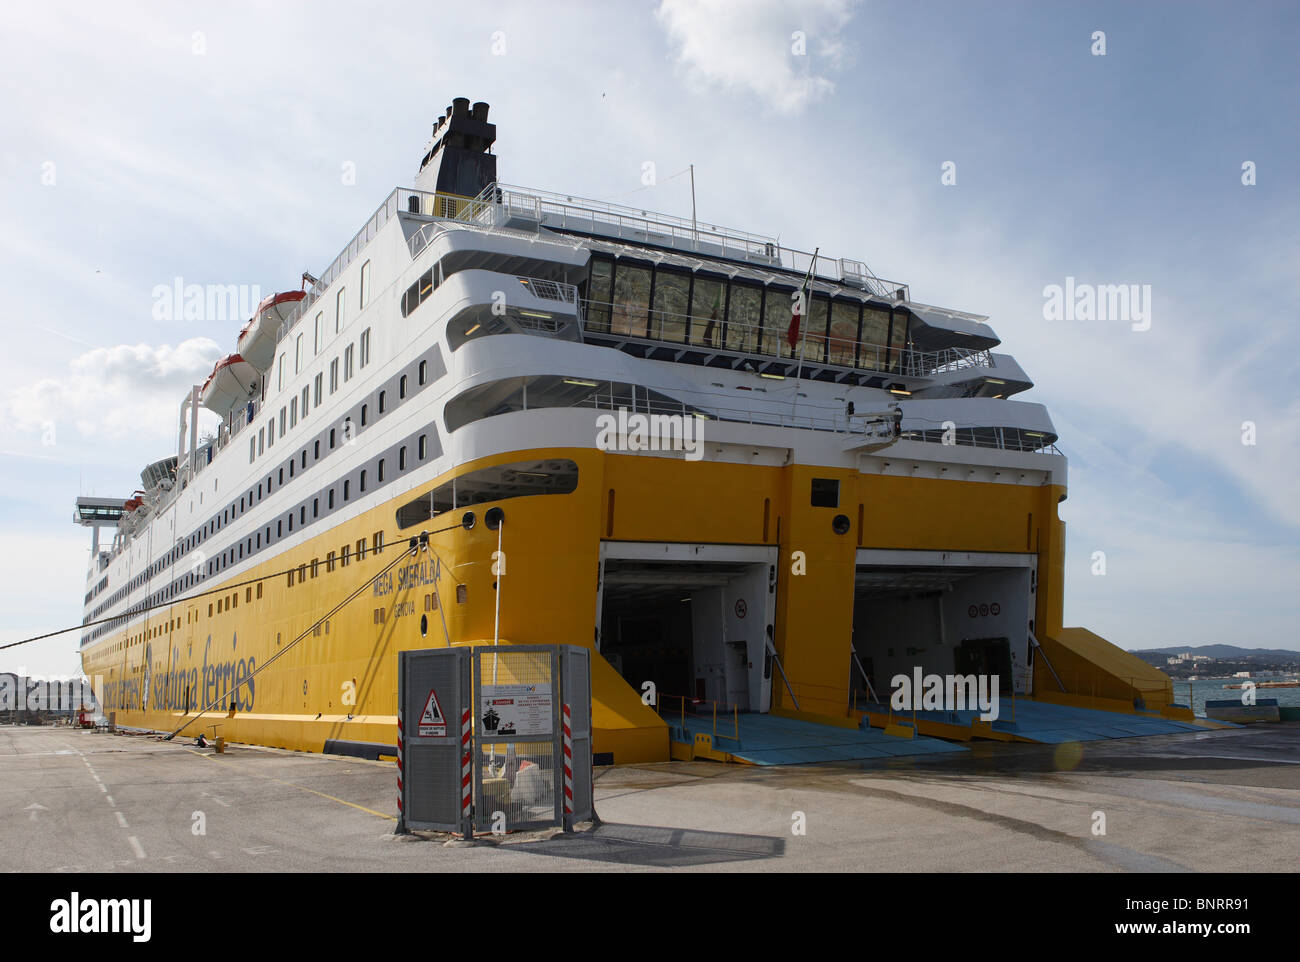 Corsica and sardinia ferry in the port of toulon france stock photo royalty free image - Port toulon corsica ferries ...